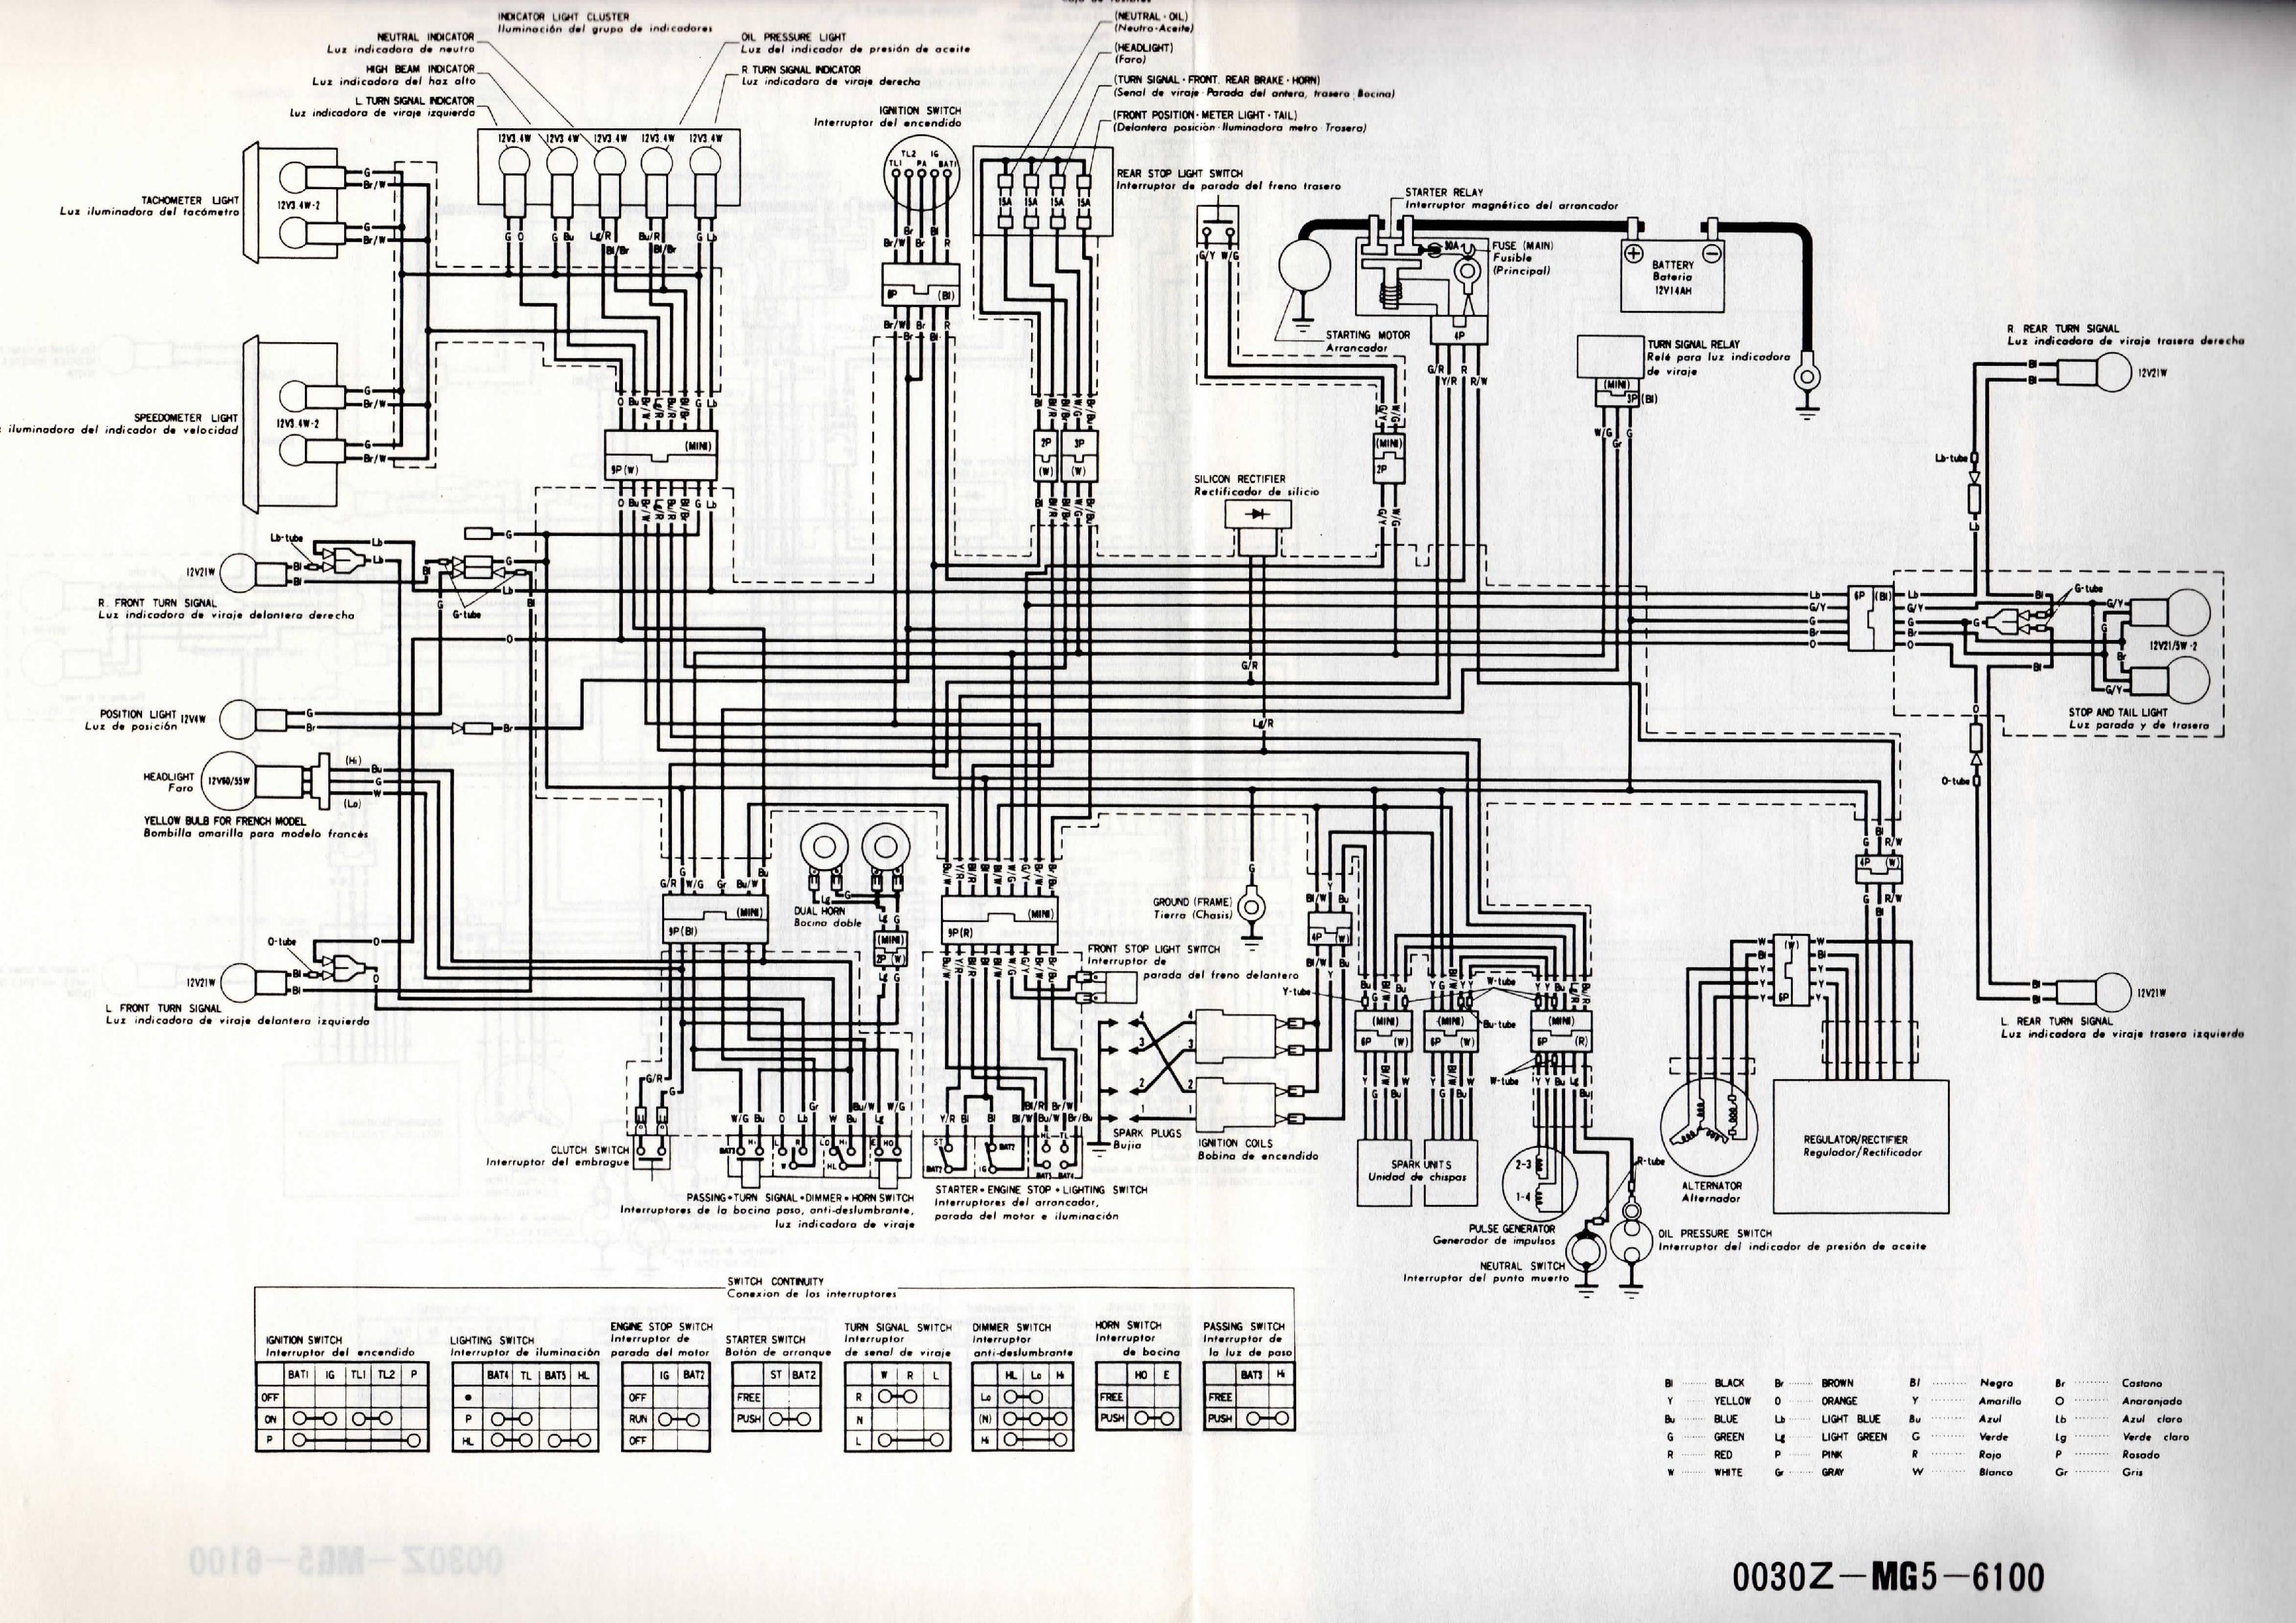 Techniek Bol Dor Club Nederland Honda Cb750 Wiring Schematic Diagram Cb1100fd Europe